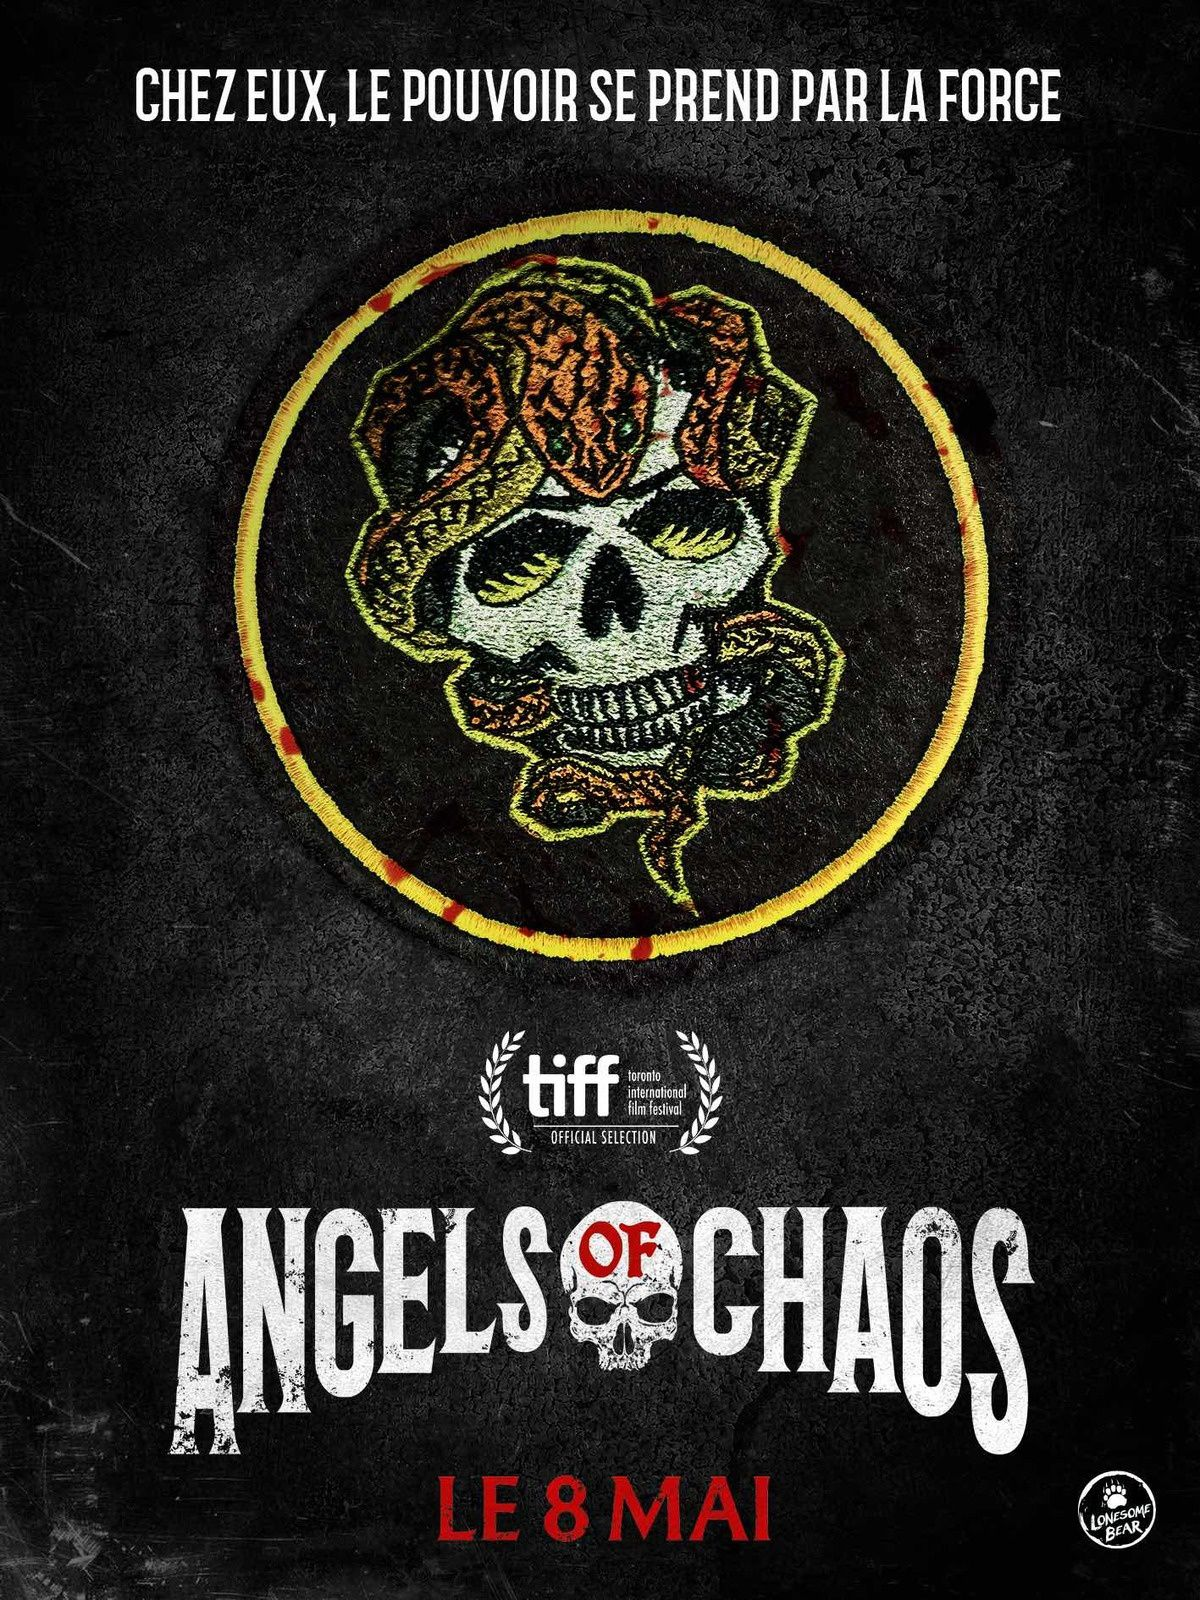 ANGELS OF CHAOS : les SONS OF ANARCHY australiens arrivent en France le 8 mai 2019 !